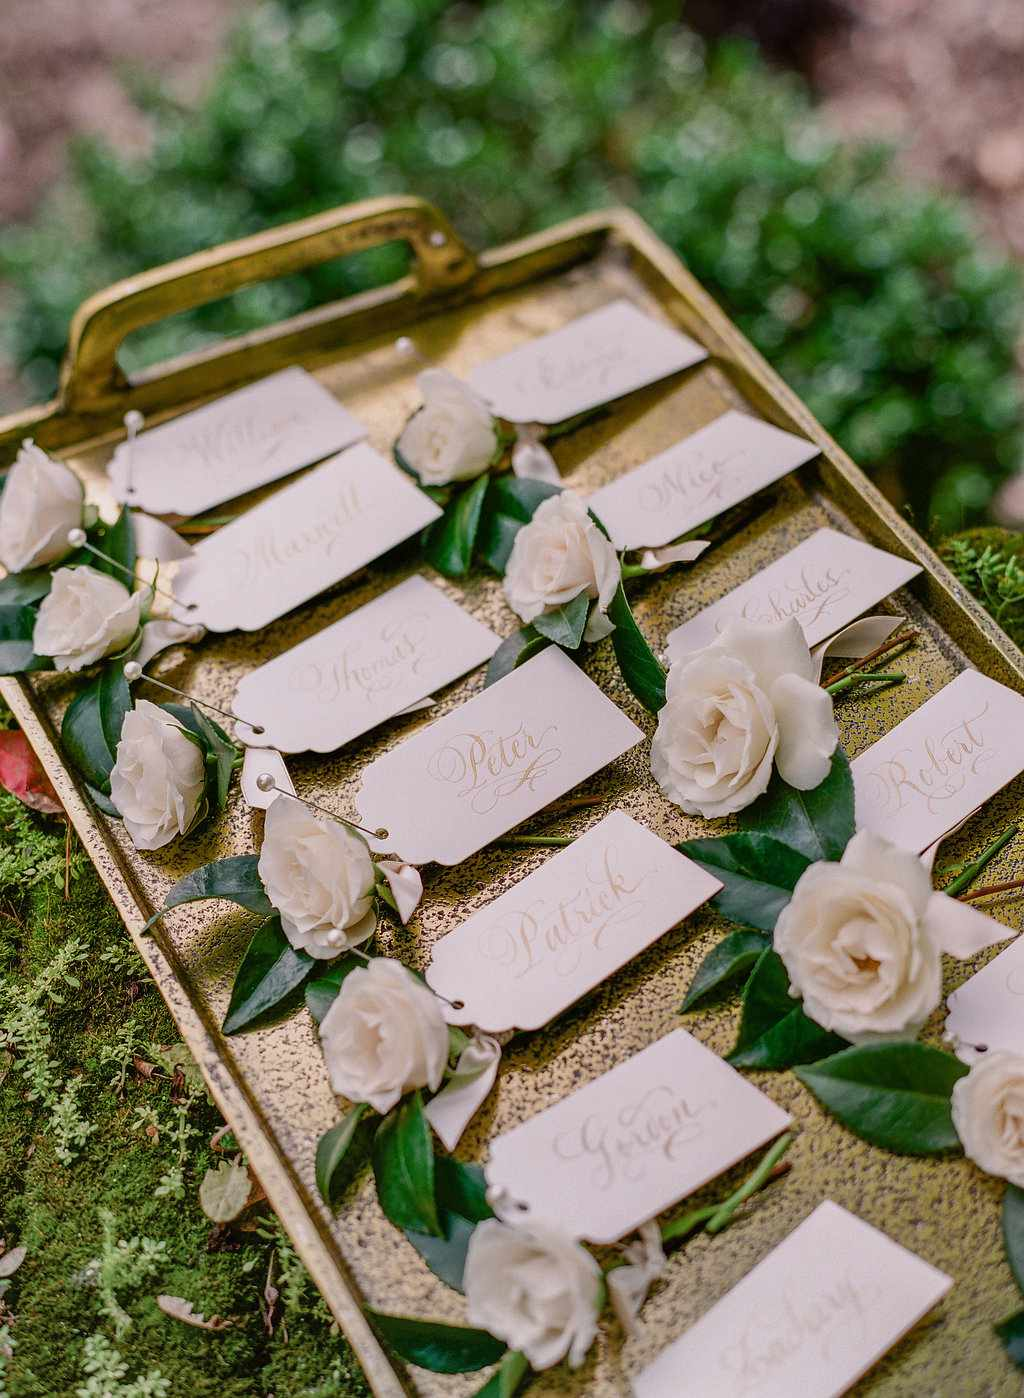 White rose boutonnieres with name cards